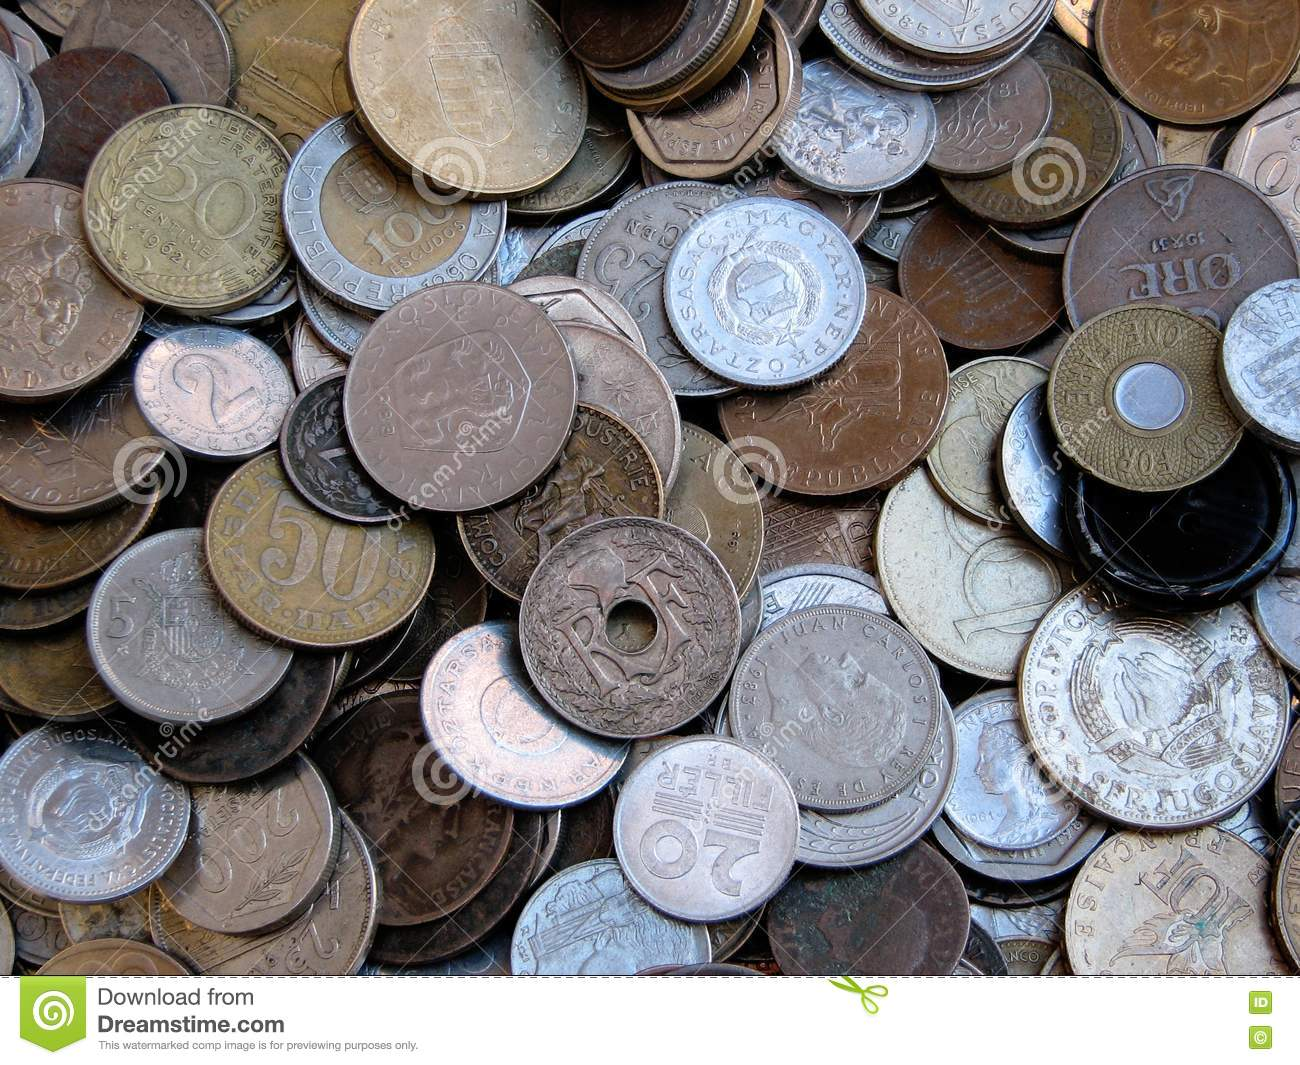 old coins stock image - photo #29